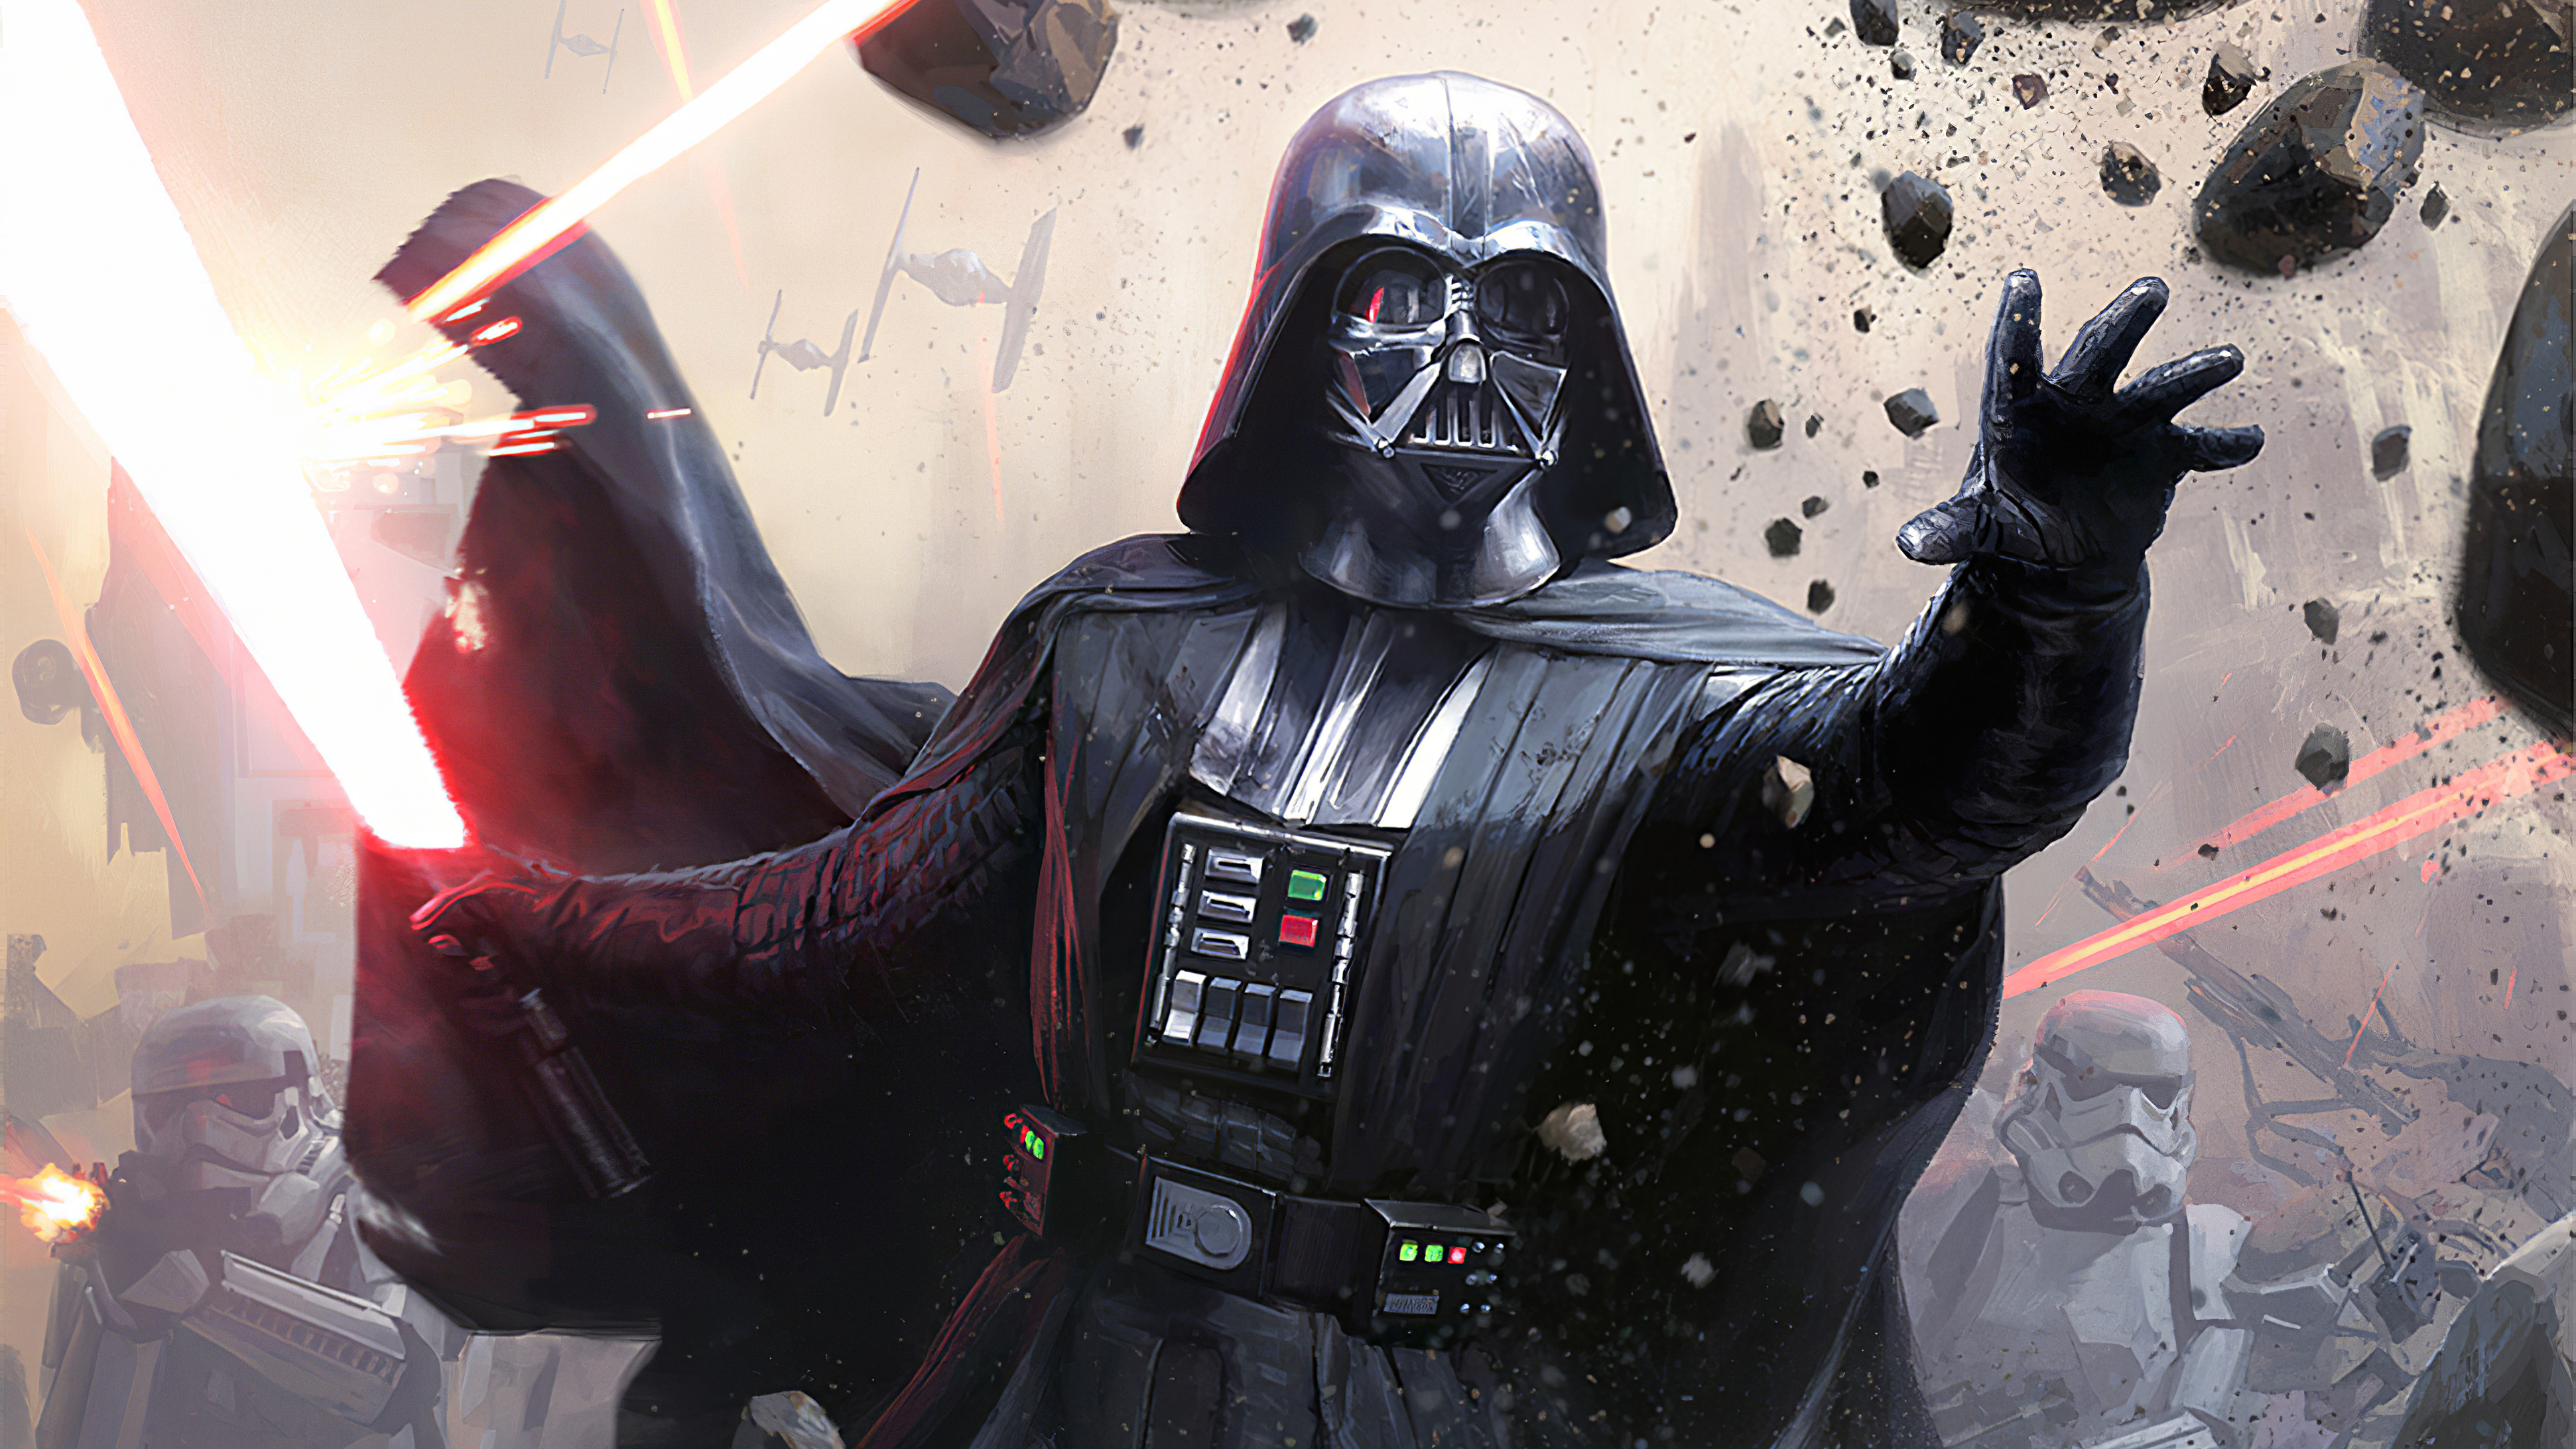 Darth Vader 4k 2020 Hd Movies 4k Wallpapers Images Backgrounds